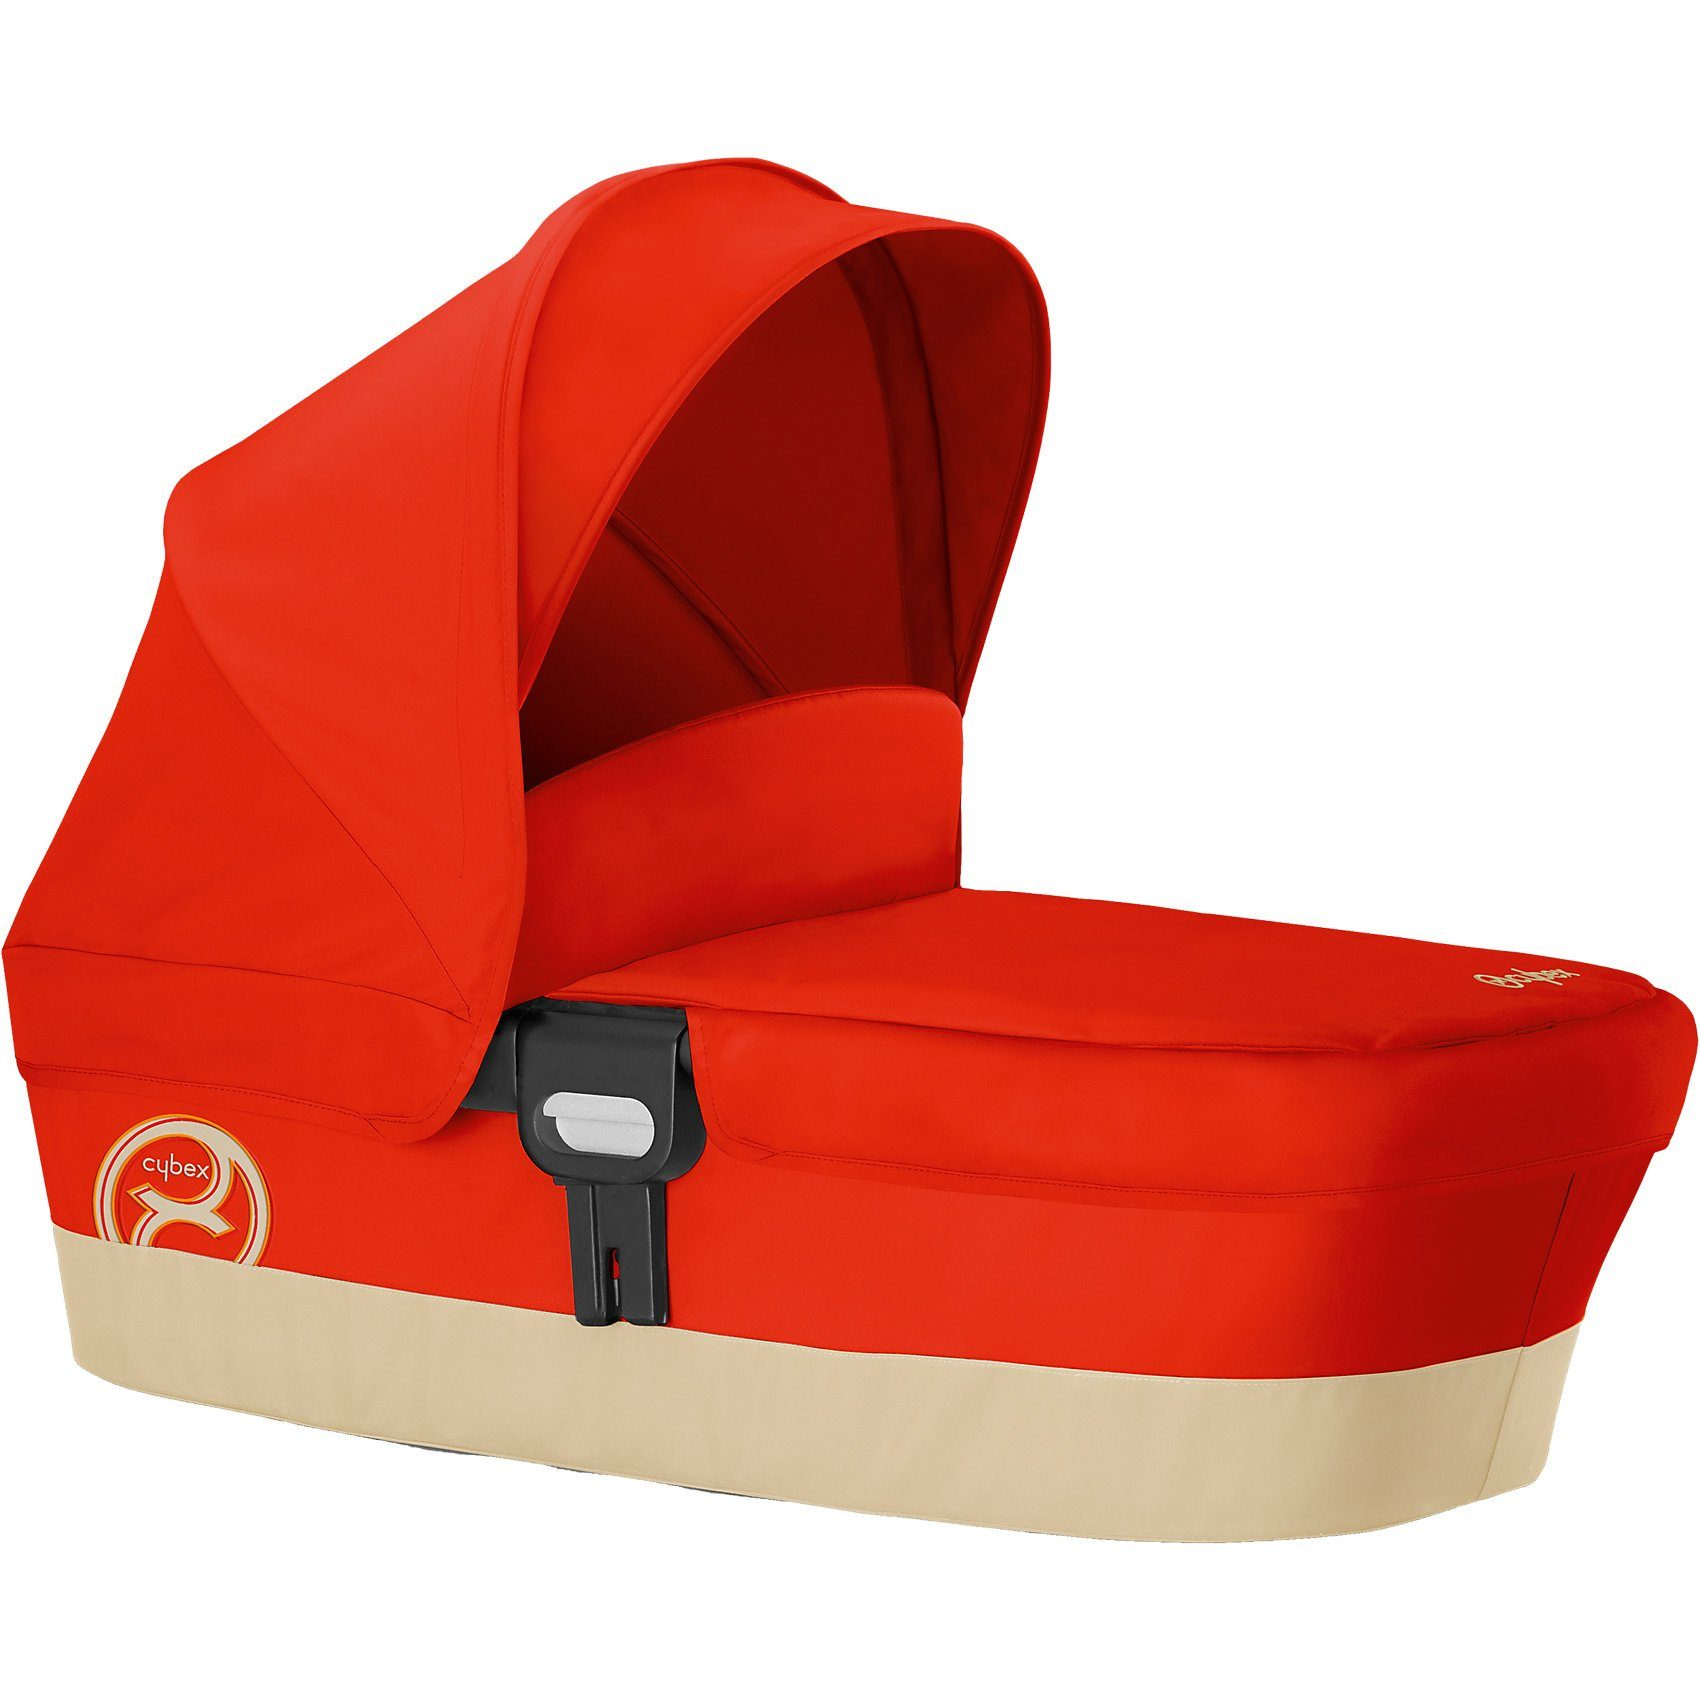 Cybex Kinderwagenaufsatz Carry Cot M, Gold-Line, Autumn Gold, 2016